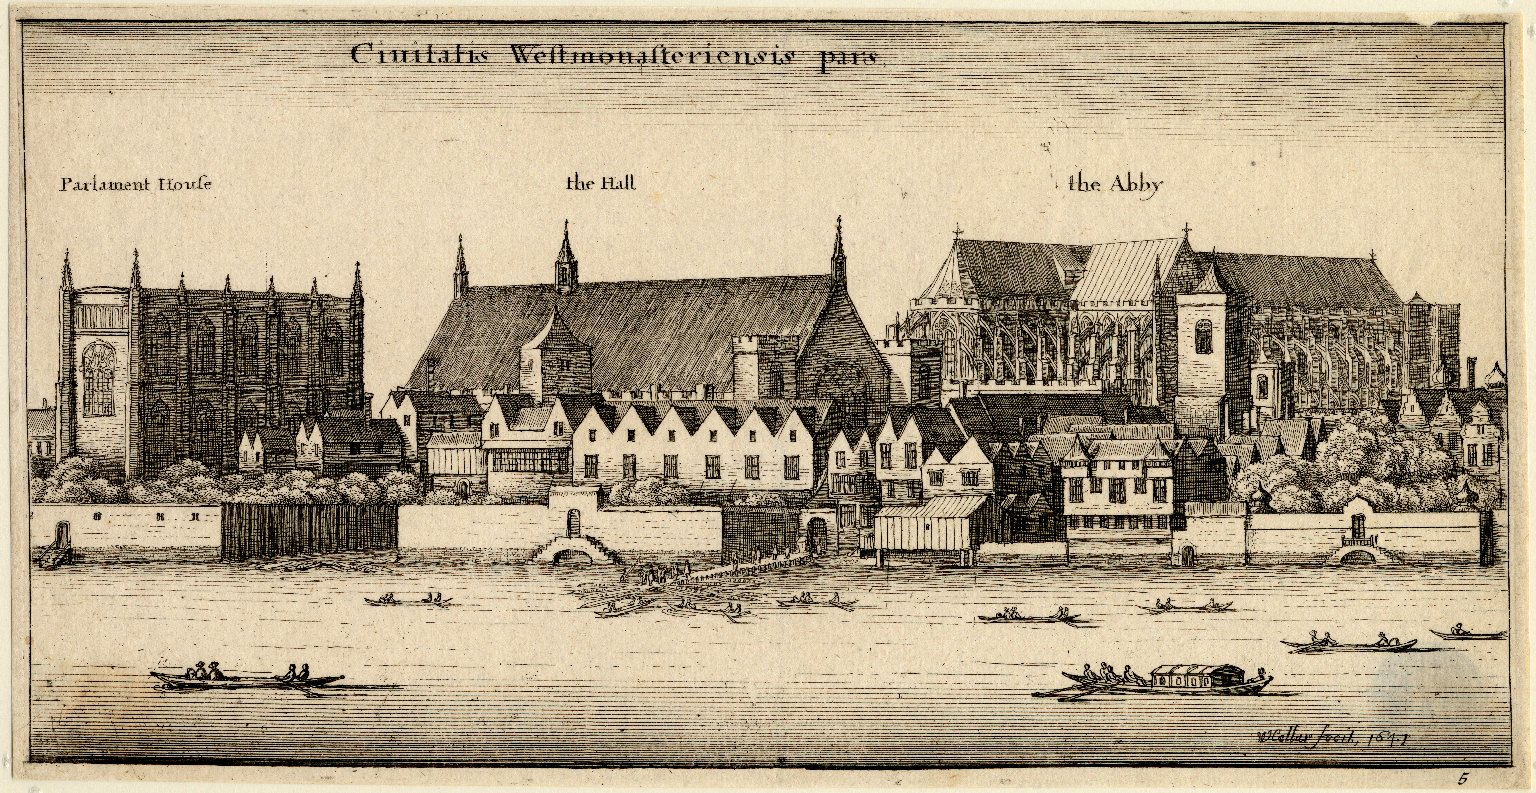 View of Westminster from the River Thames by Wenceslaus Hollar. Image courtesy of the Folger Digital Image Collection.